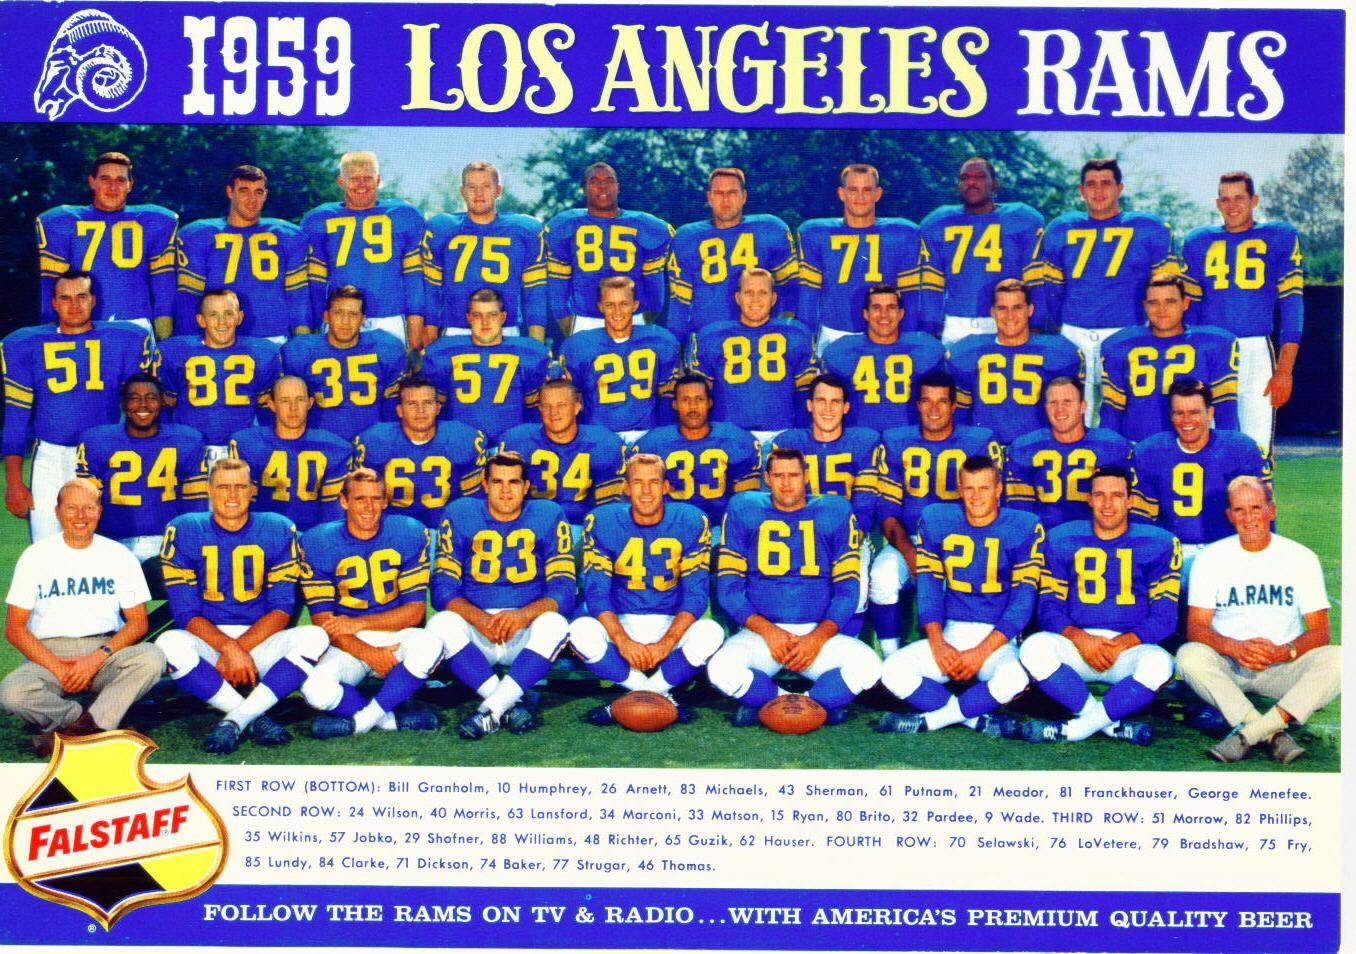 A photo of the 1959 Rams when they were still based in L.A.